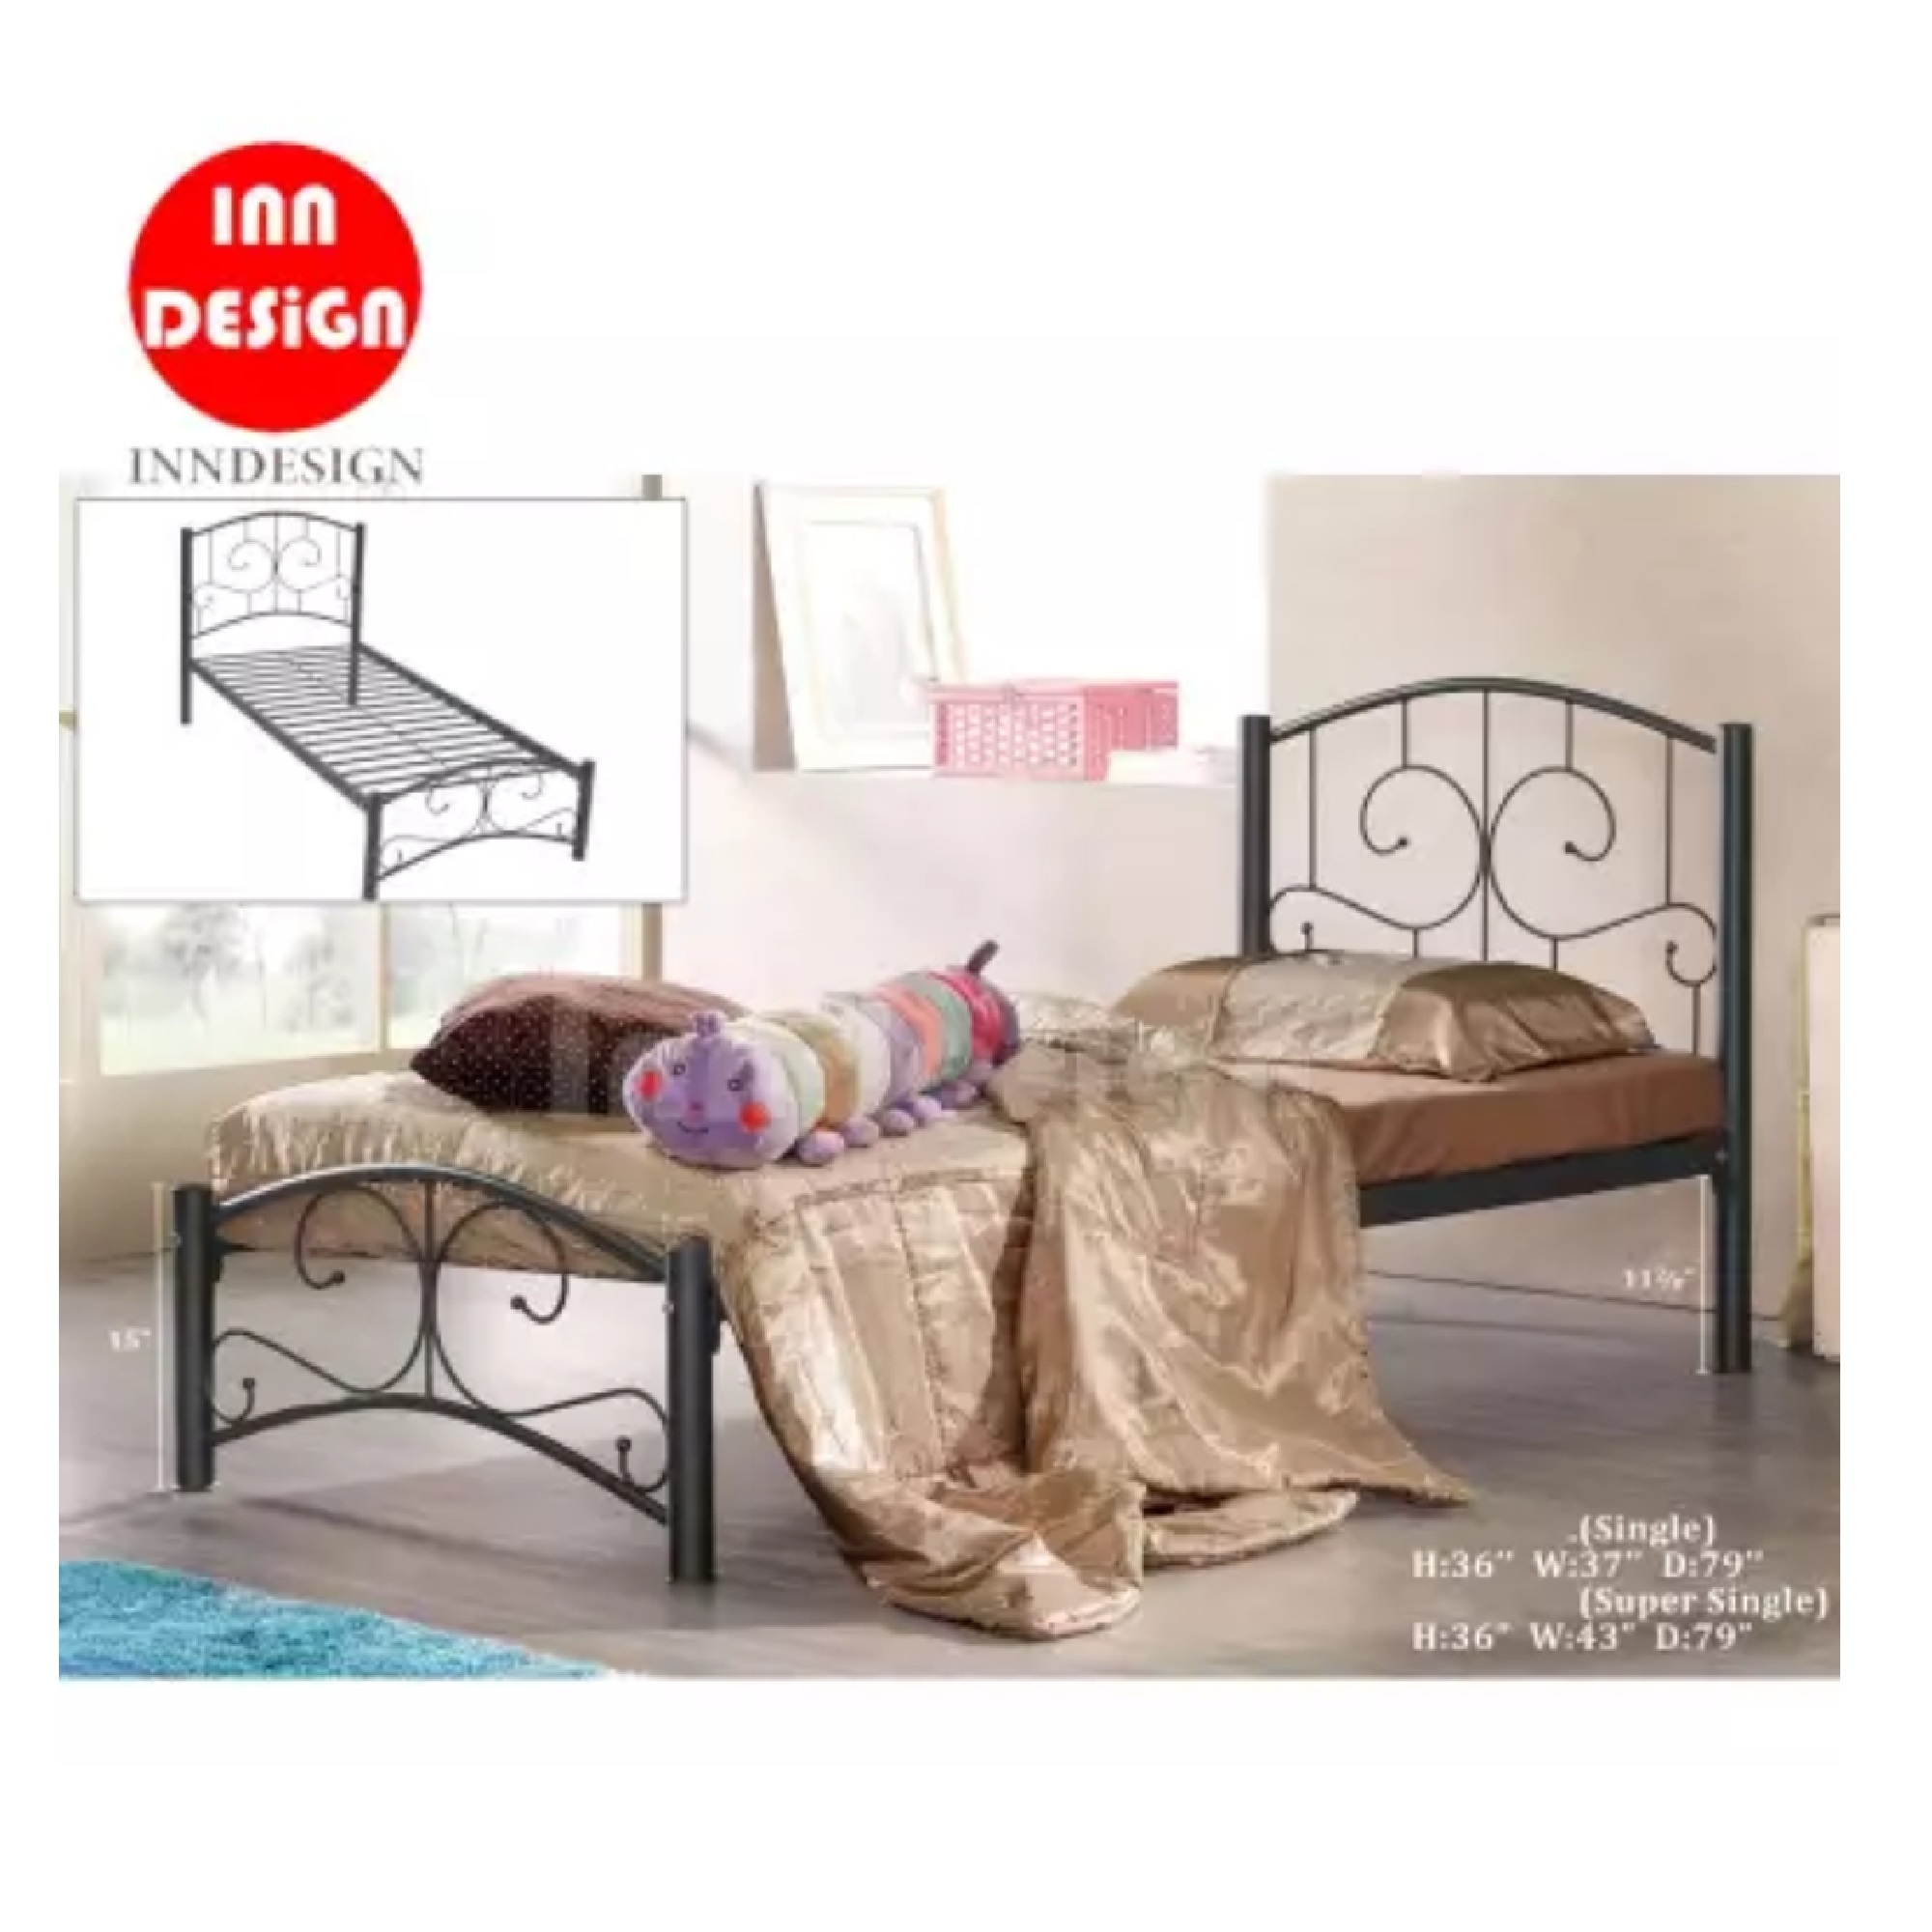 Super Single Metal Bed / Metal Bed Frame (Black)